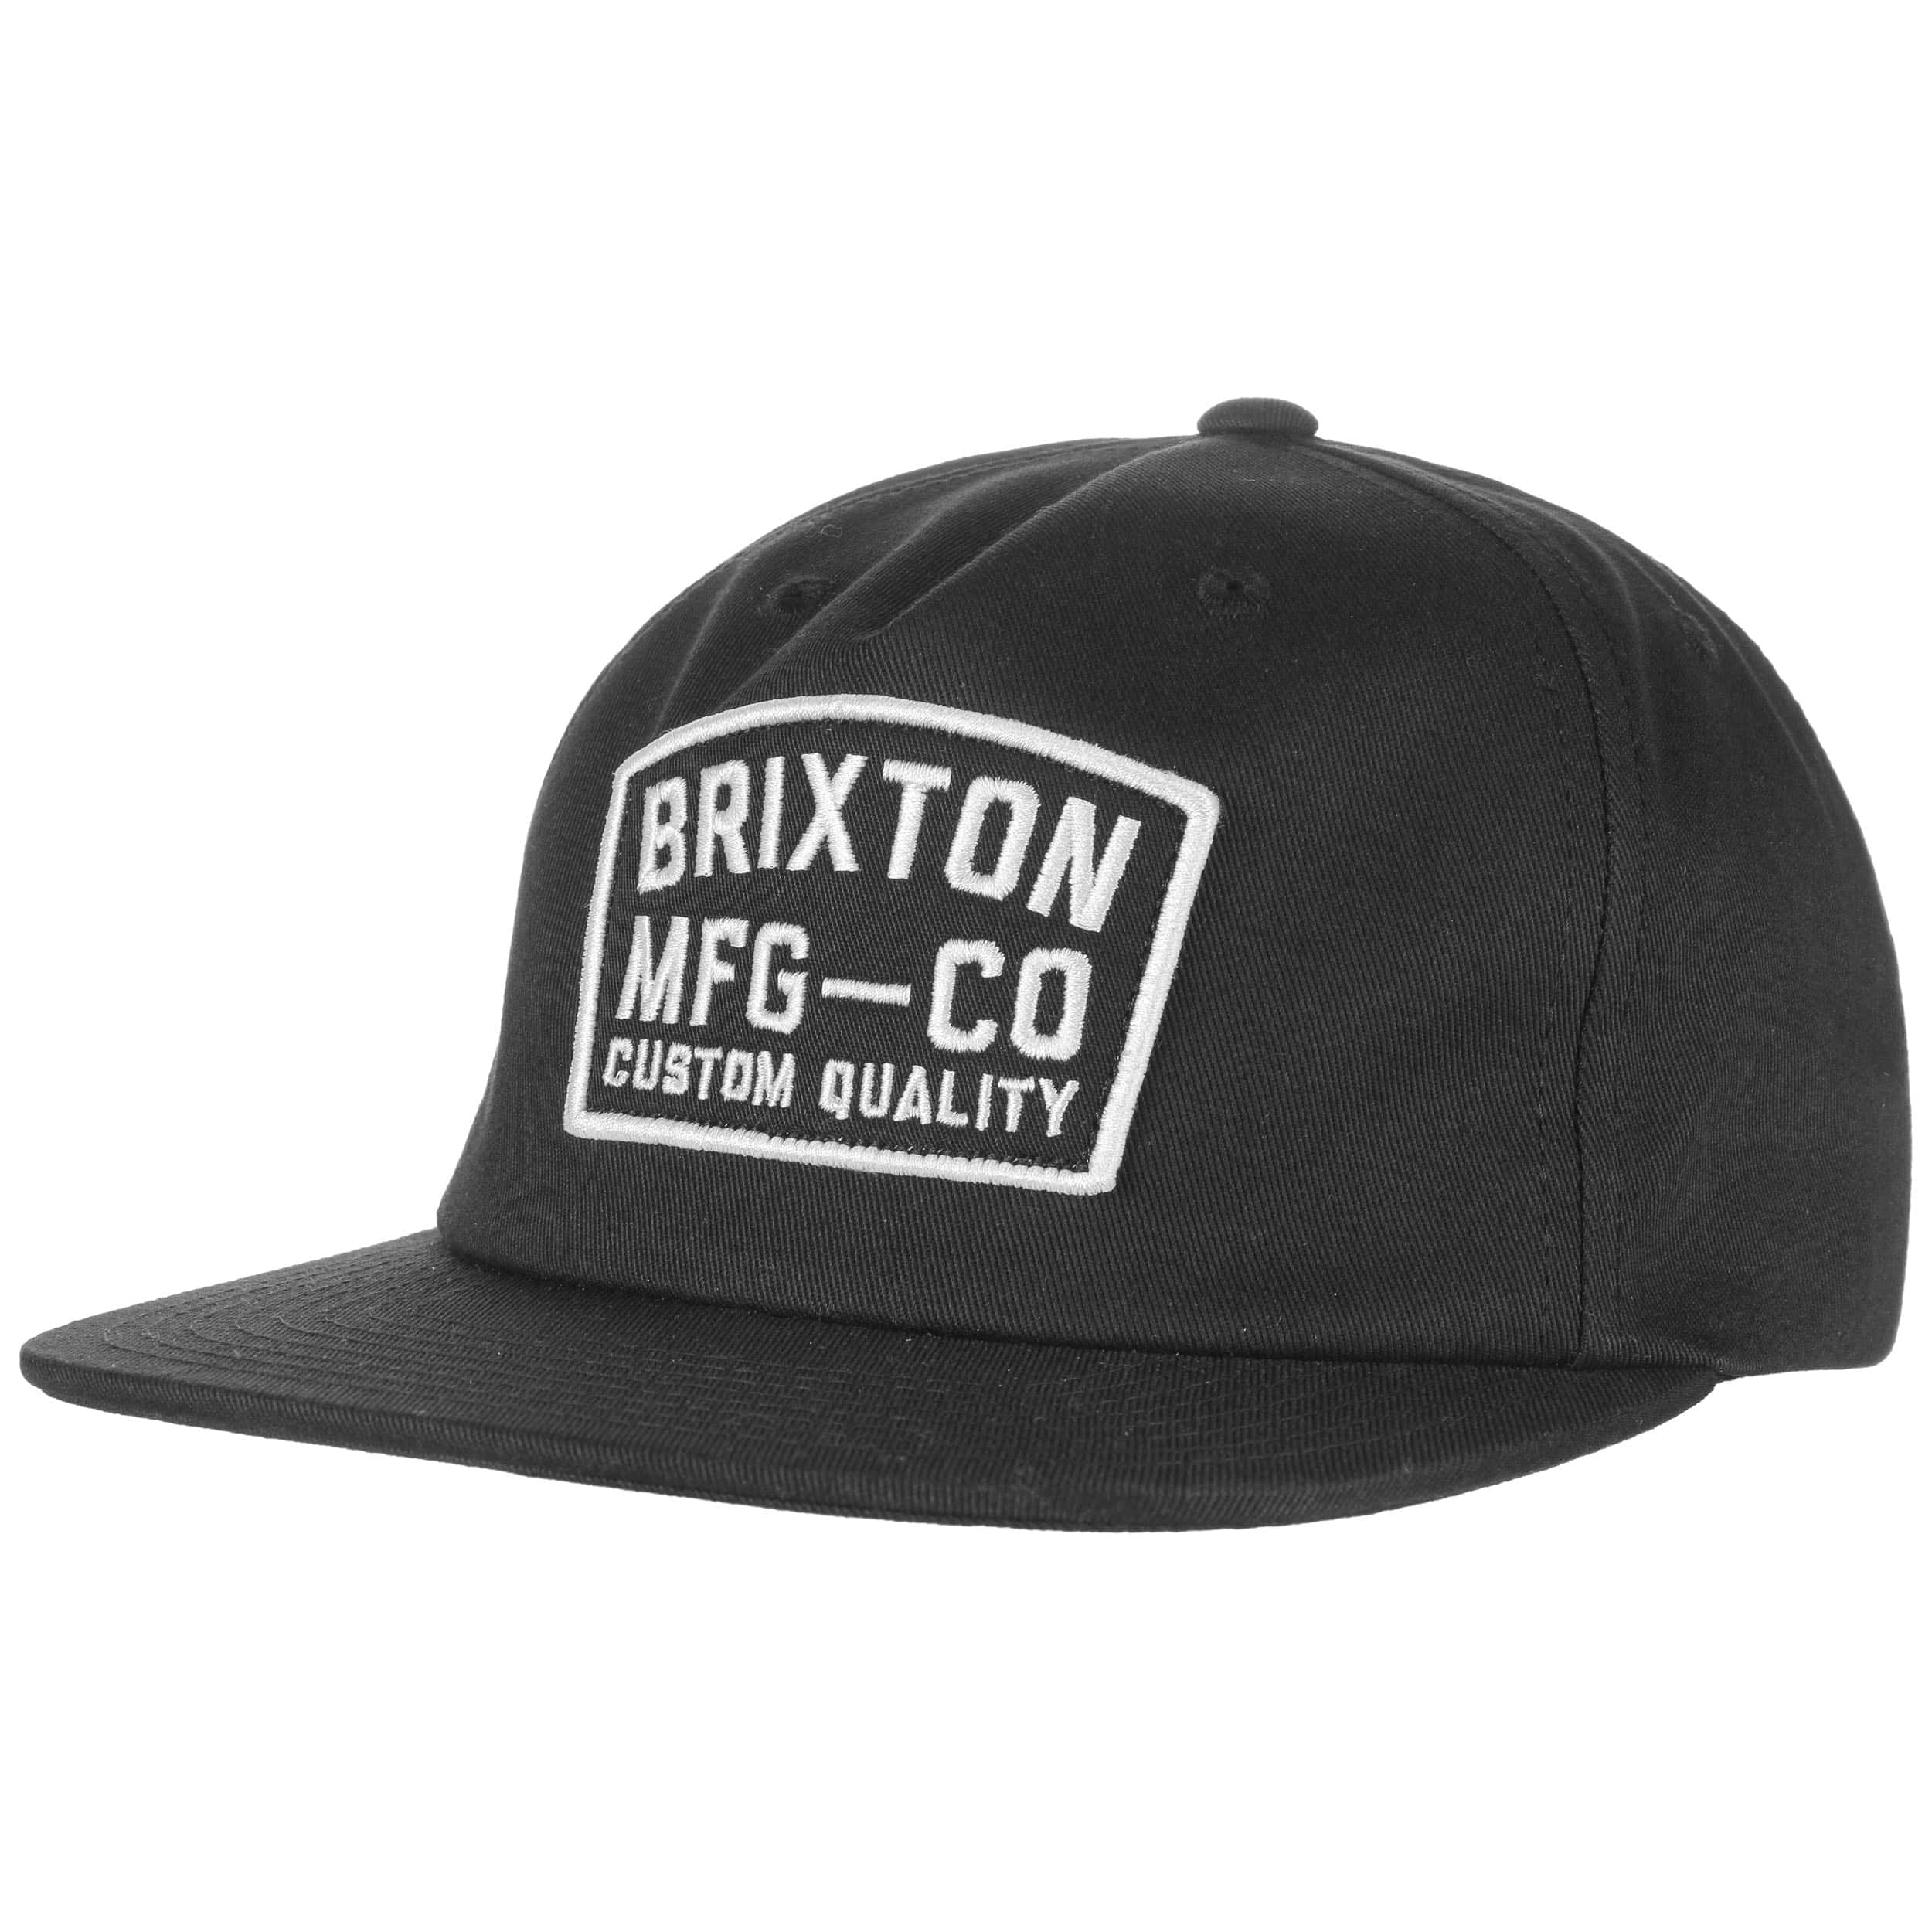 8598b0269198e ... new style custom quality snapback cap by brixton black 5 73226 51ed7 ...